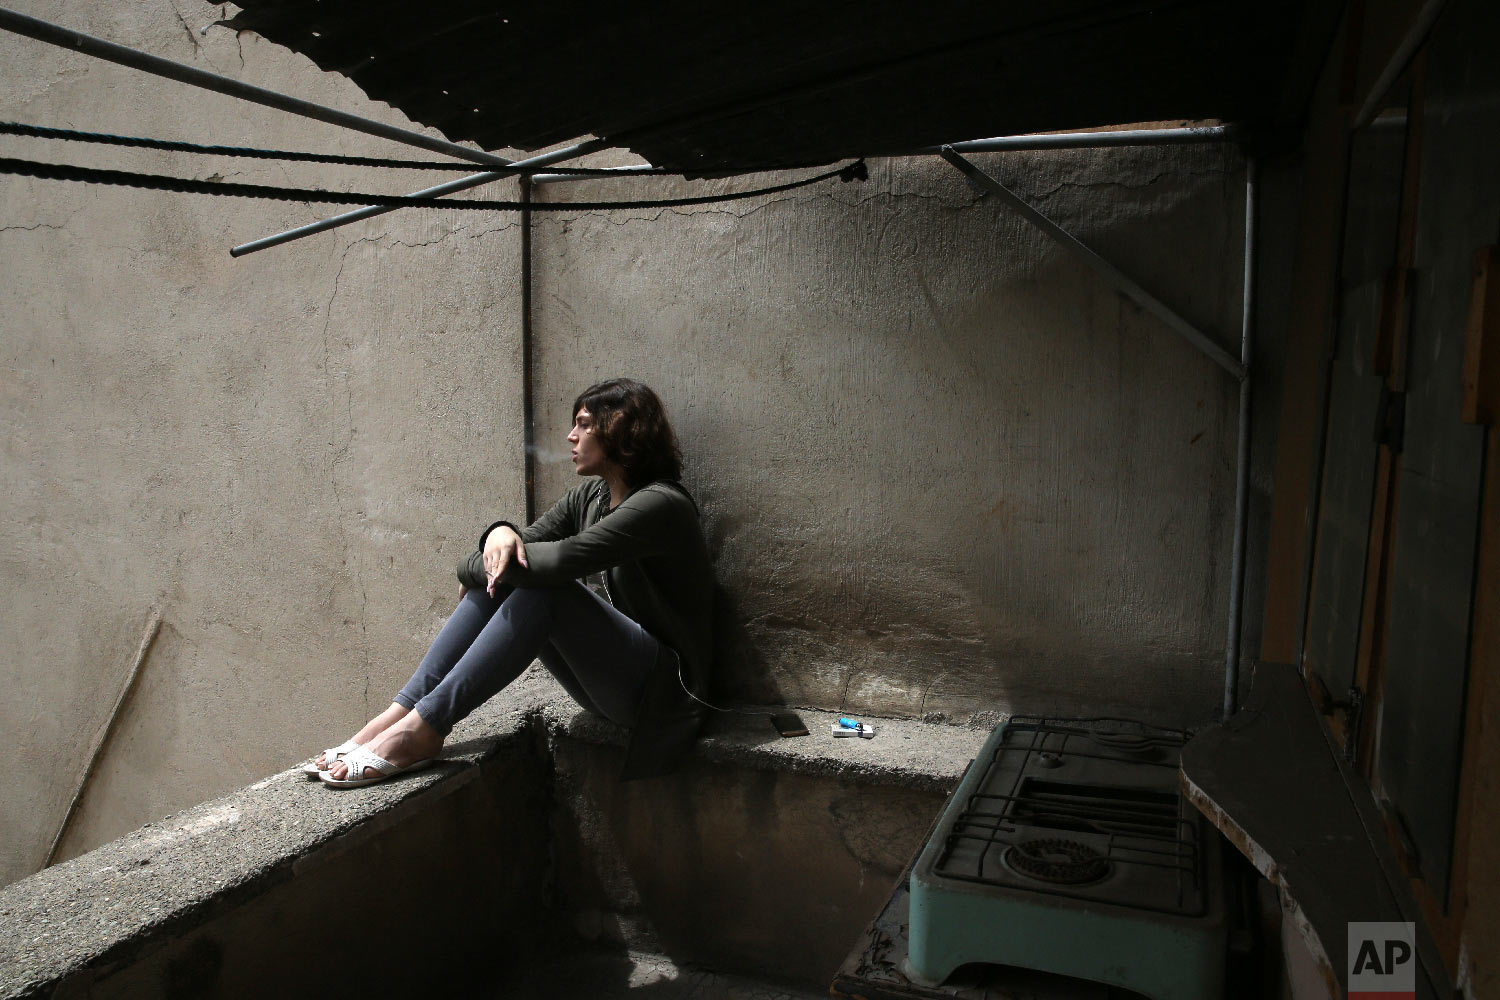 Nahal, a 19-year-old transgender woman smokes cigarette on her balcony in Tehran, Iran, April 22, 2018. Nahal had hardly started high school before being forced to leave over her classmates' instance she dress as a man. Her manicured fingernails, painted pink, brush away her long brown hair as she looks through old photographs of her childhood, recounting how even her own family has struggled to accept her. (AP Photo/Vahid Salemi)